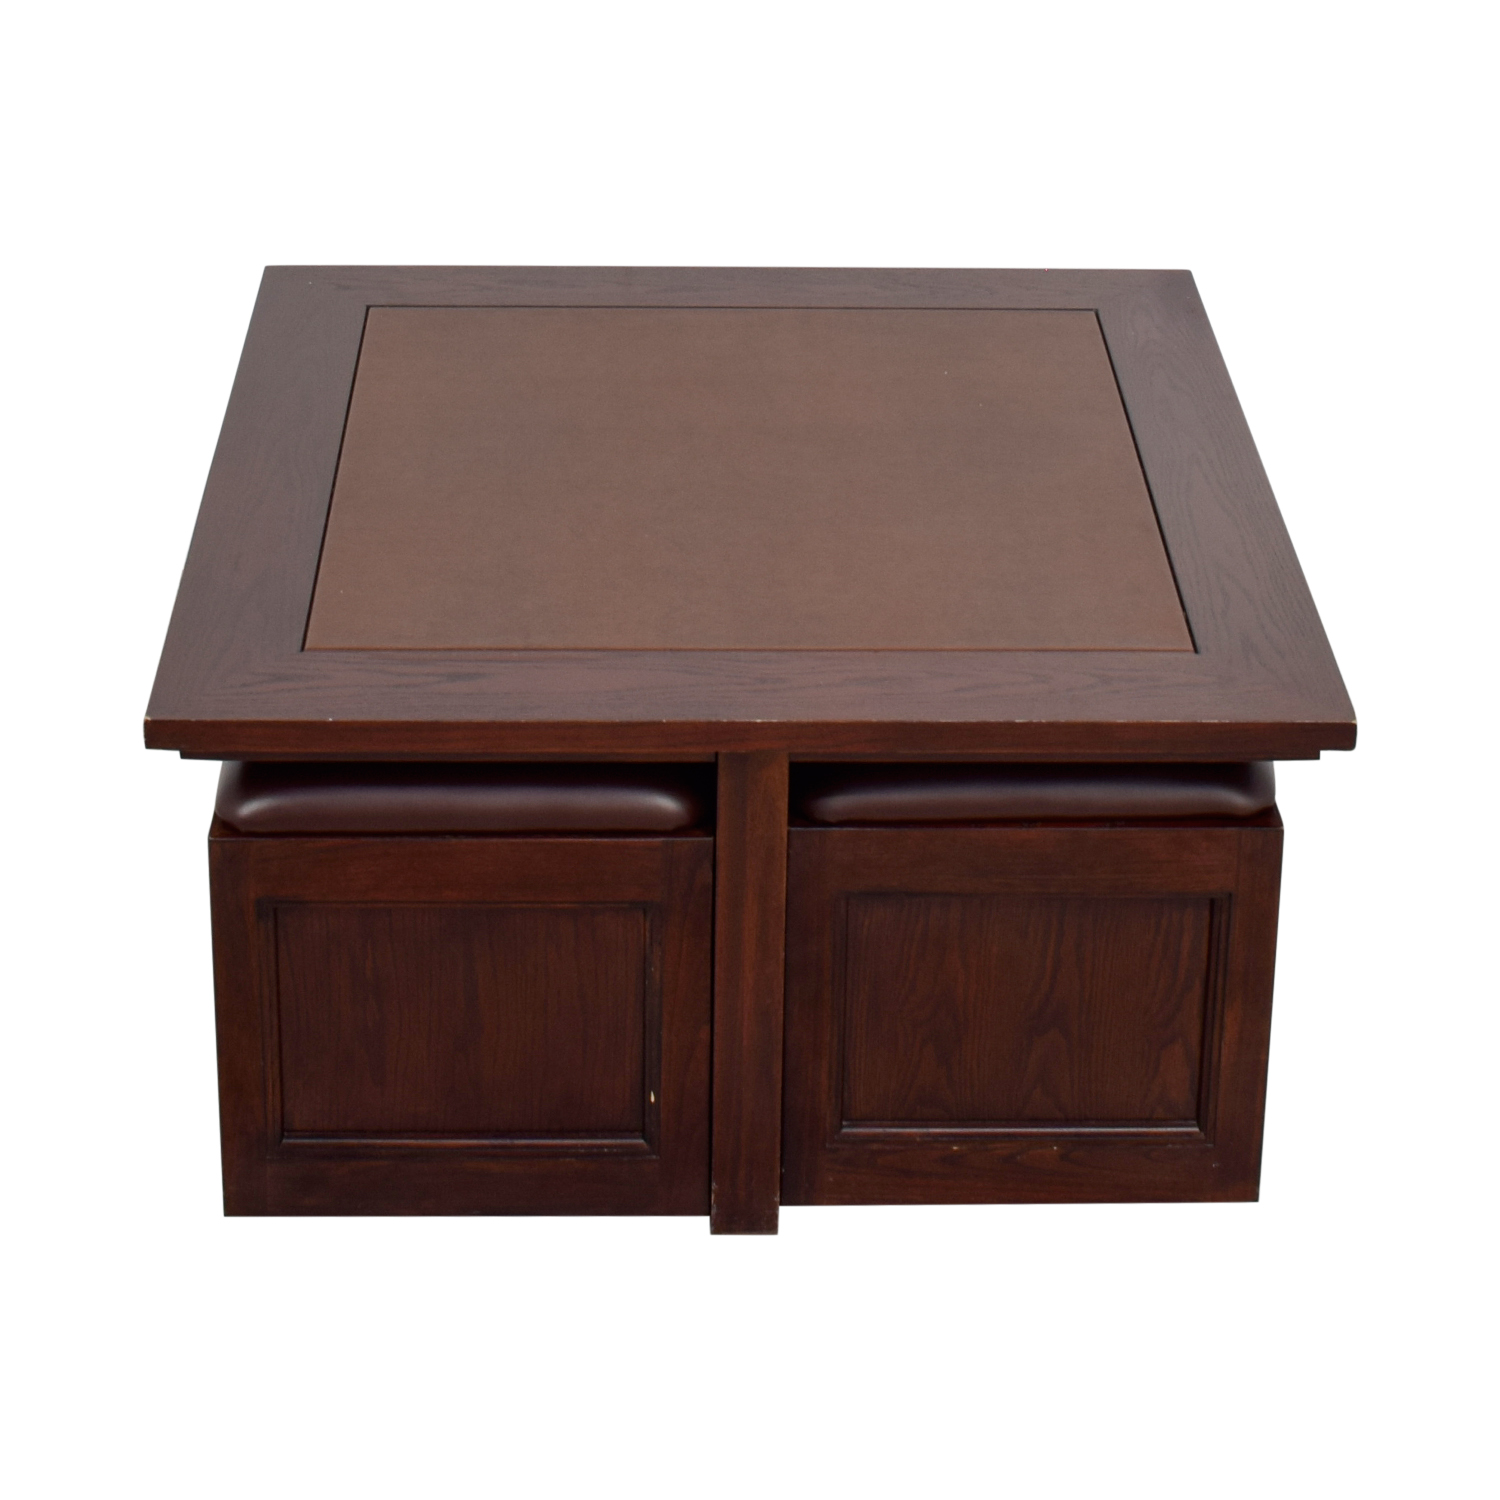 82 Off Macy S Macy S Cherry Wood Square Coffee Table With Seat Storage Tables